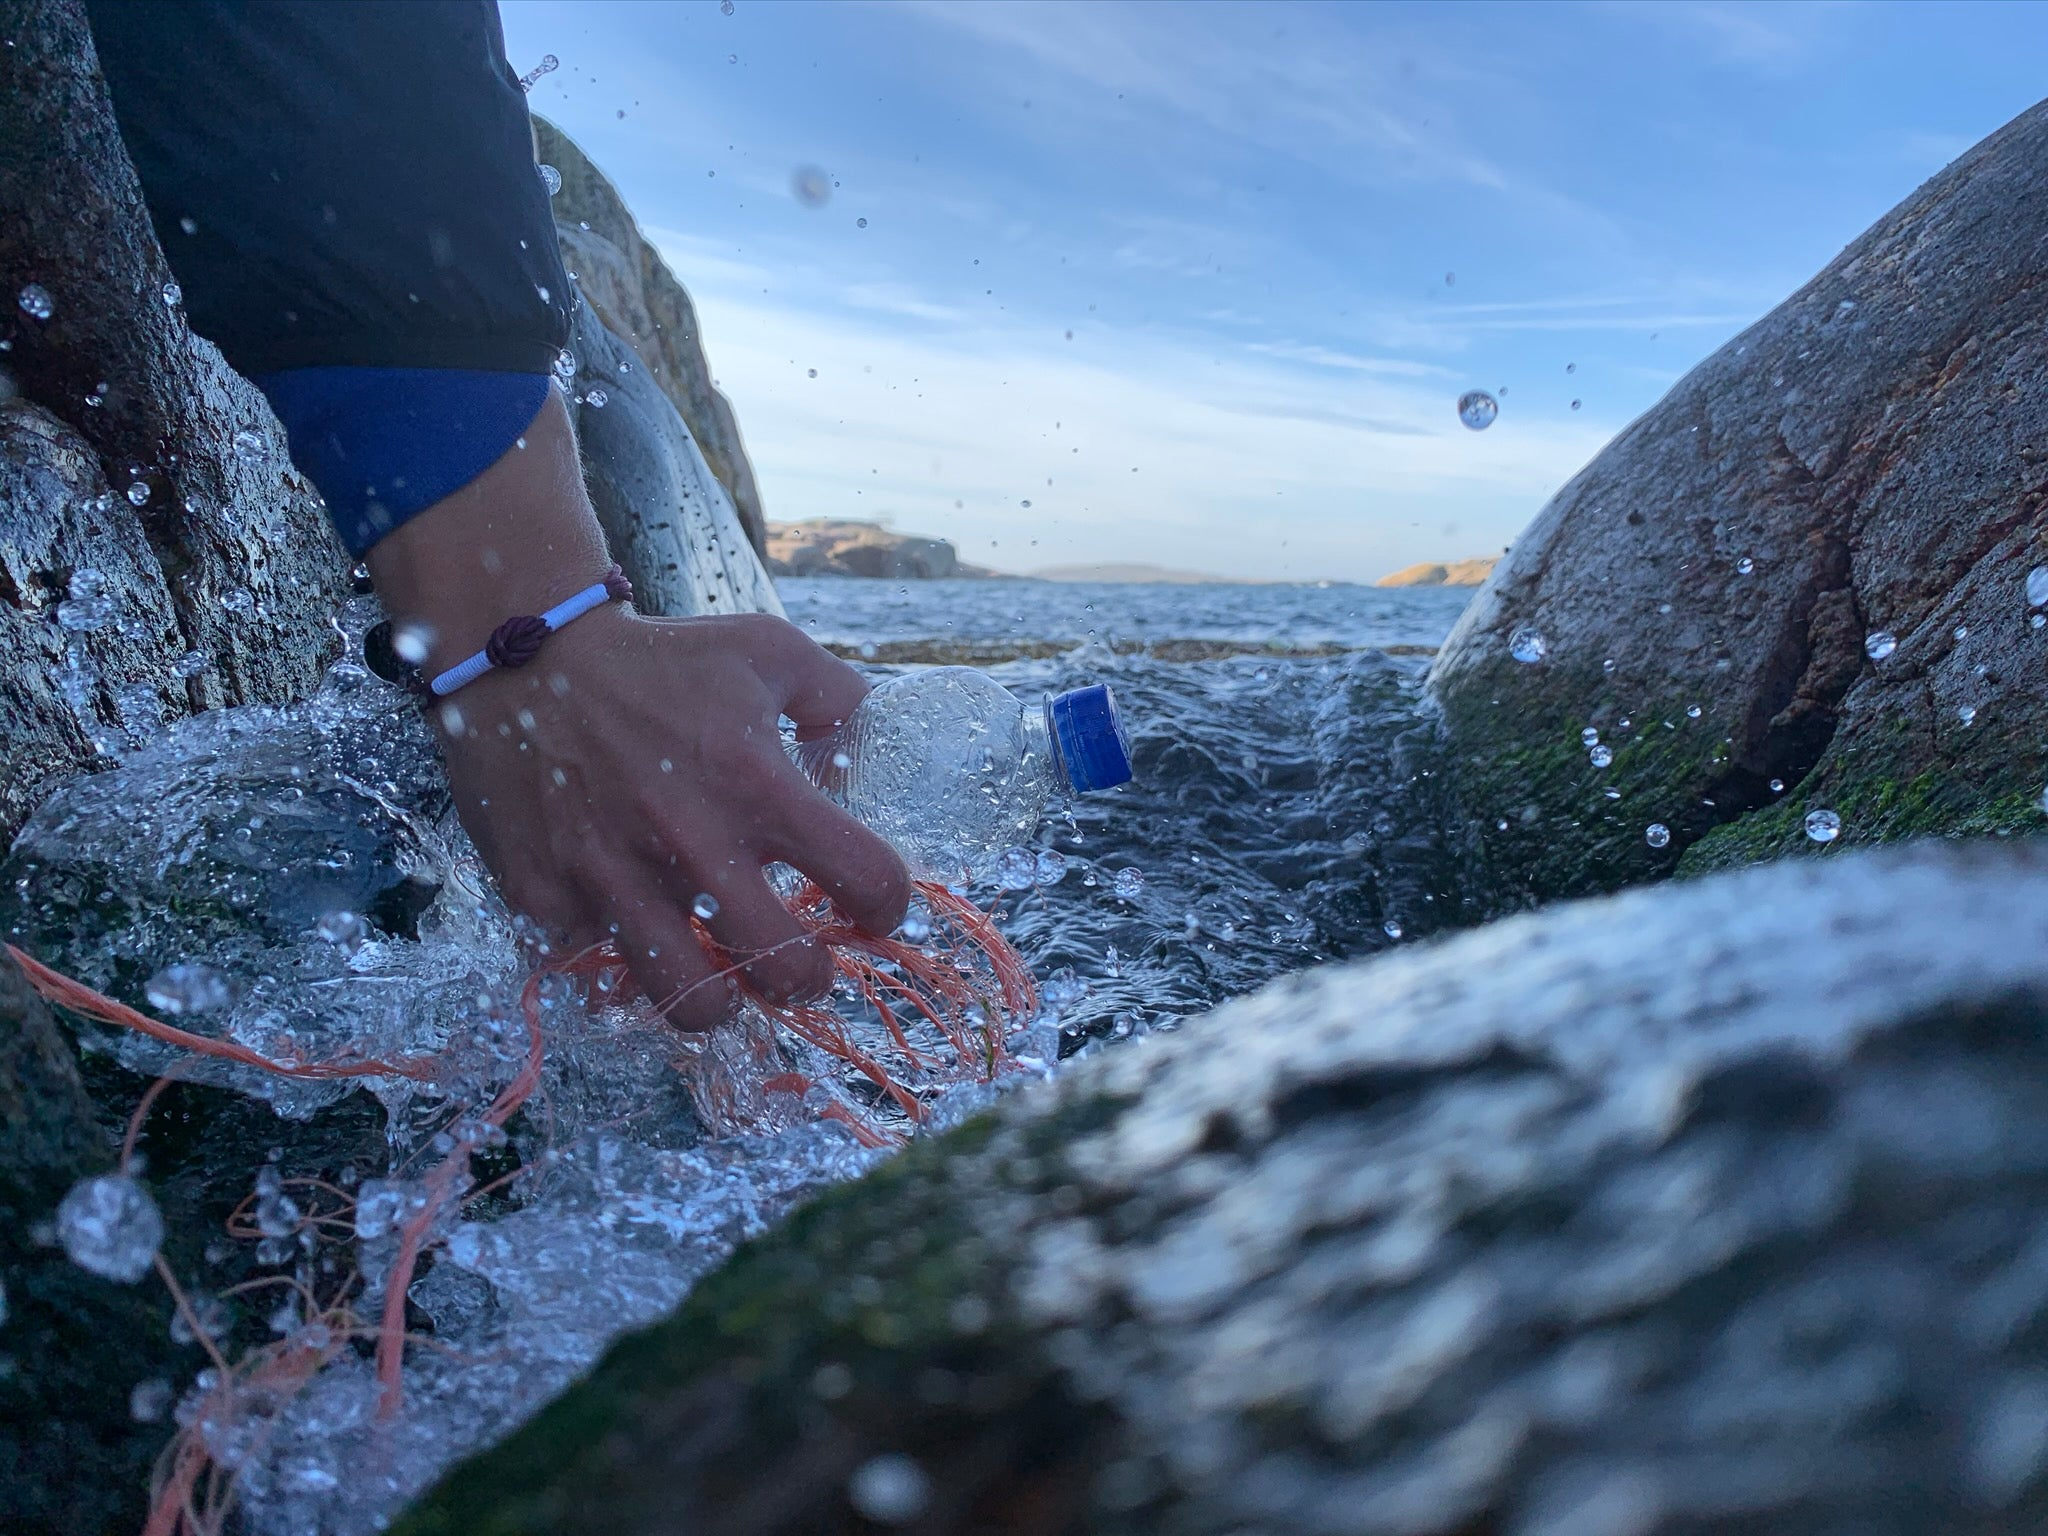 CleanSea removing plastic pollution from the ocean in Sweden